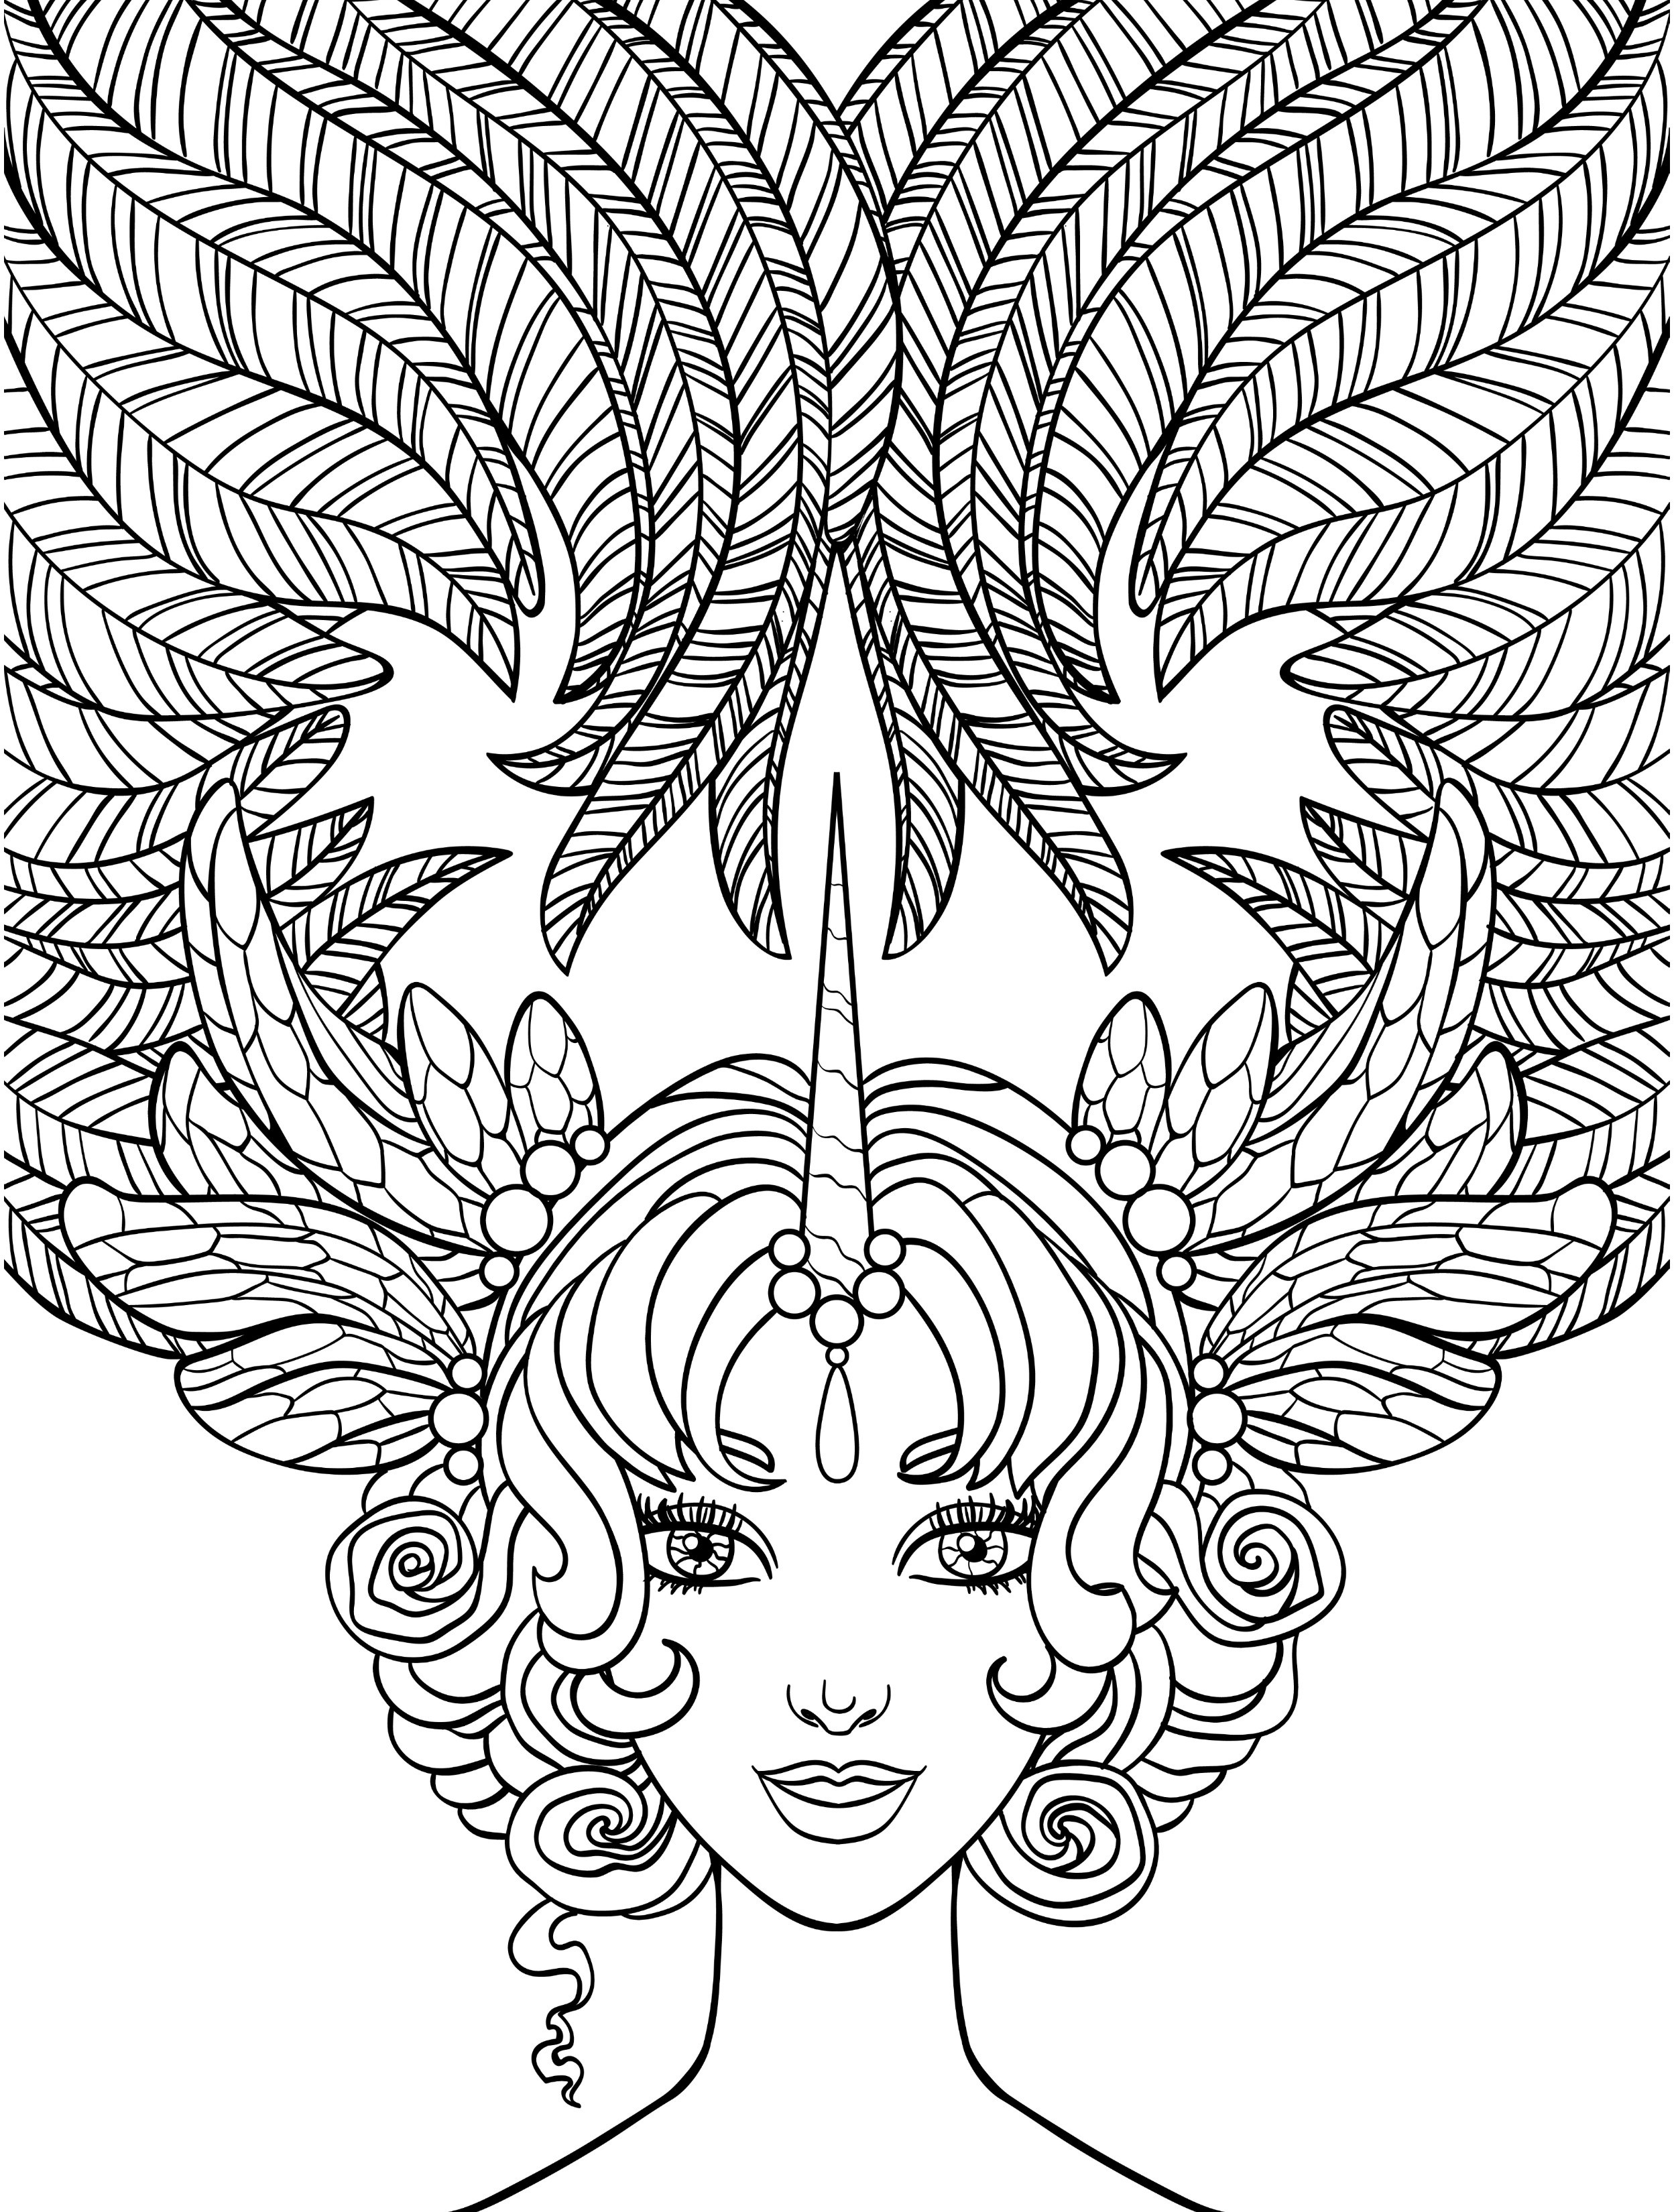 Self Coloring Pages At Getcolorings